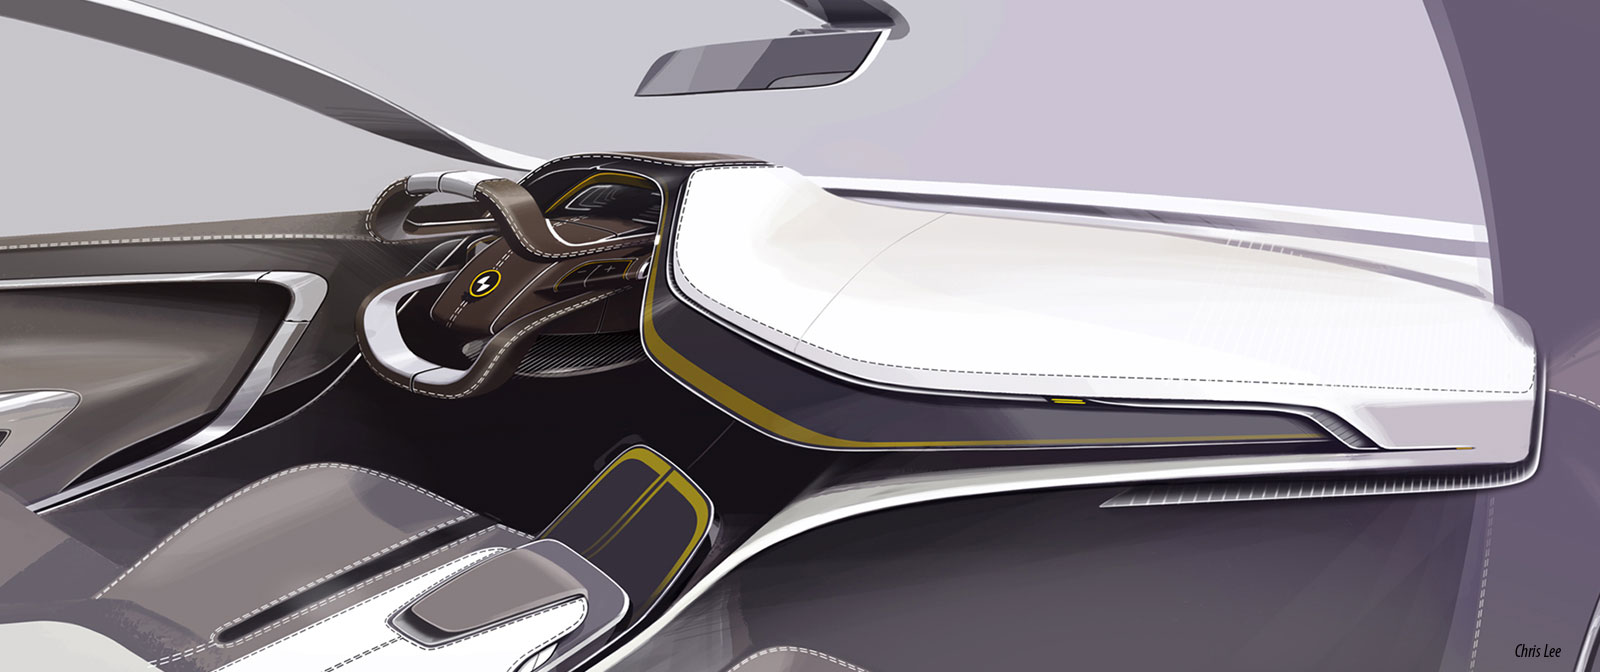 Bmw i6 concept interior design sketch car body design for Interior design concept